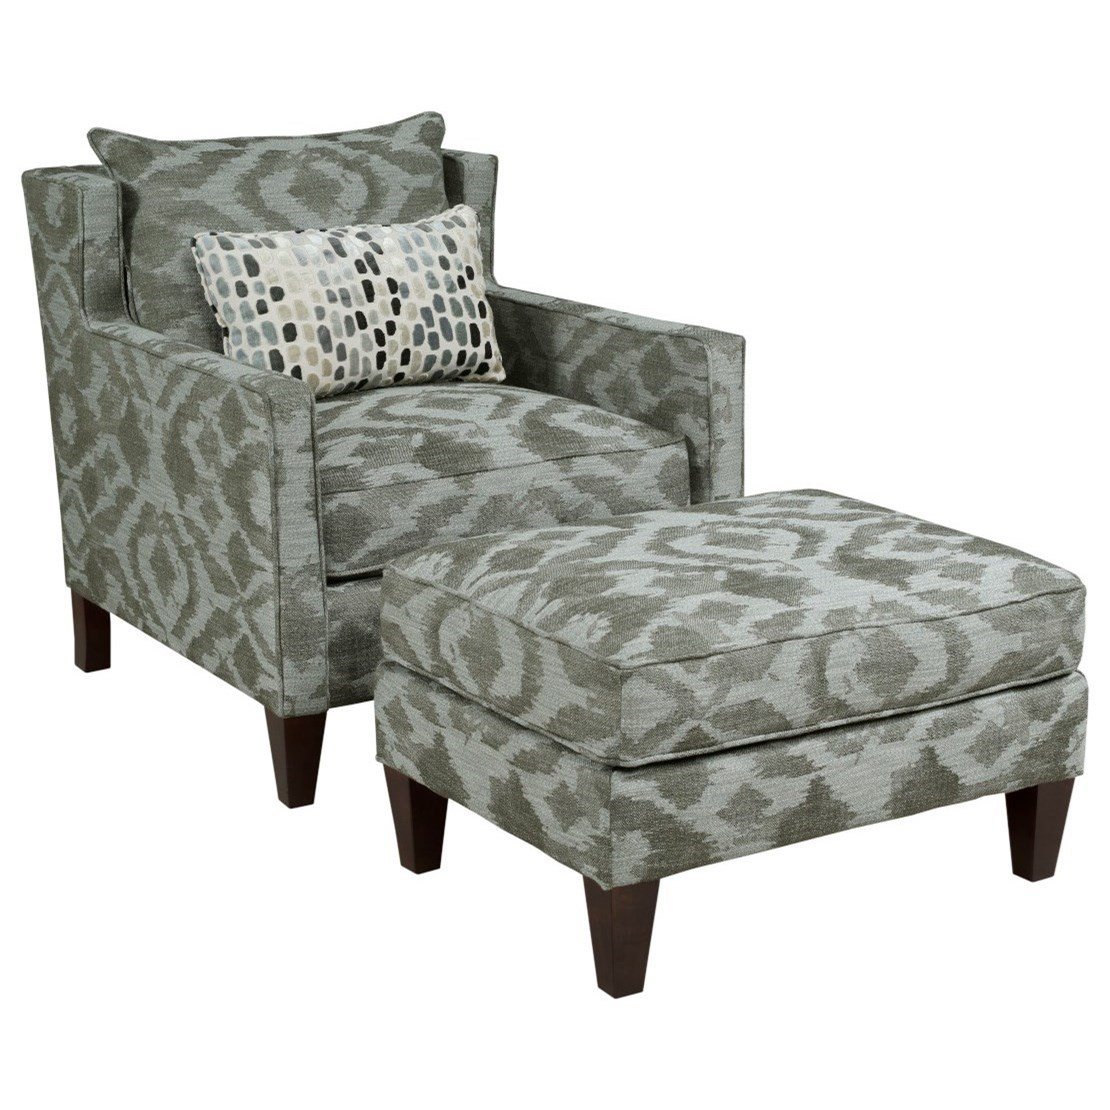 Alta Chair & Ottoman Set by Kincaid Furniture at Story & Lee Furniture